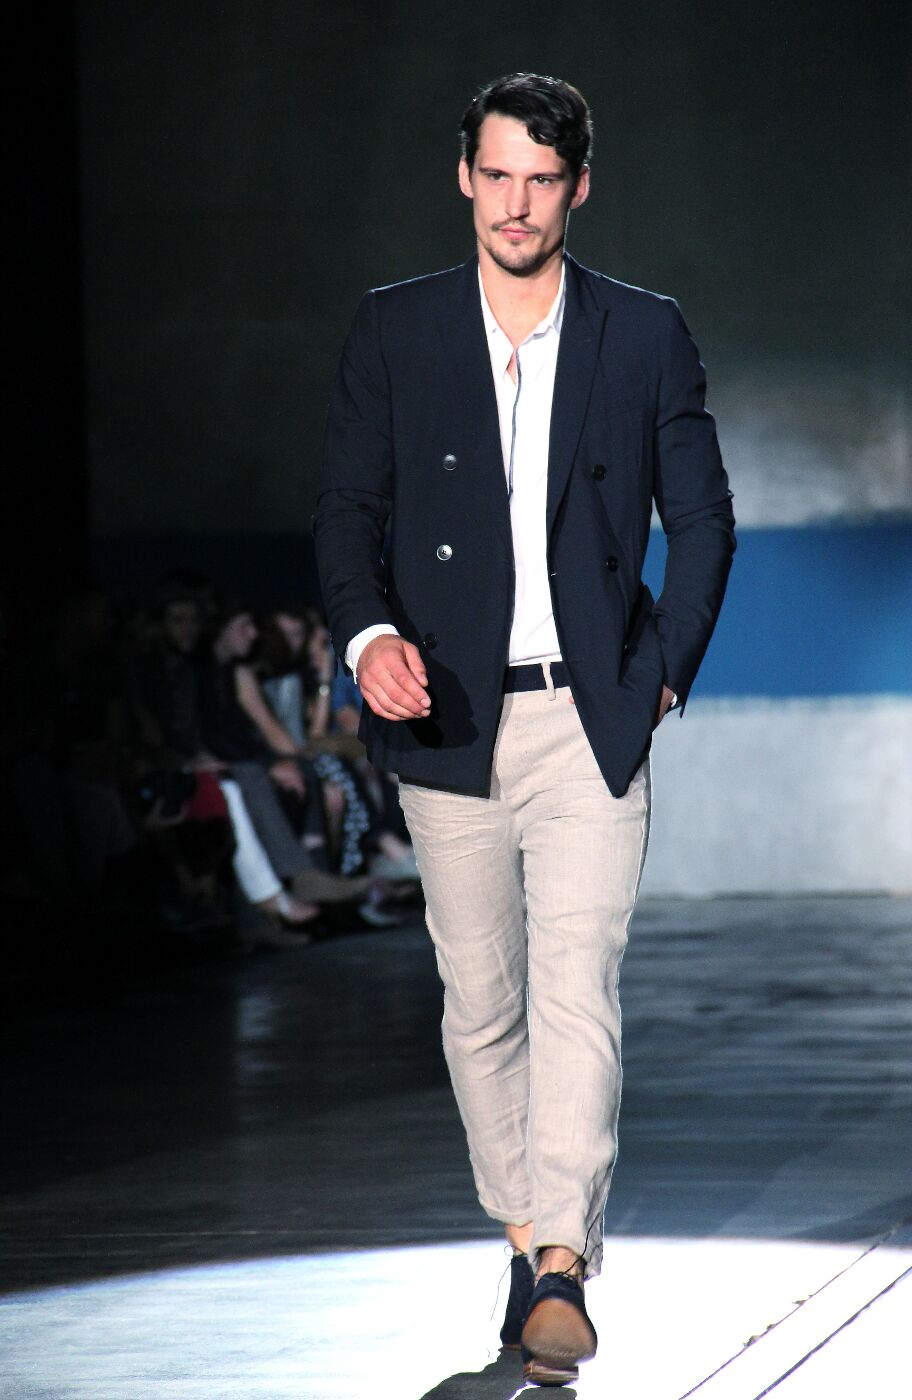 iceberg-milano-fashion-week-2012-spring-summer-fashion-show-catwalk